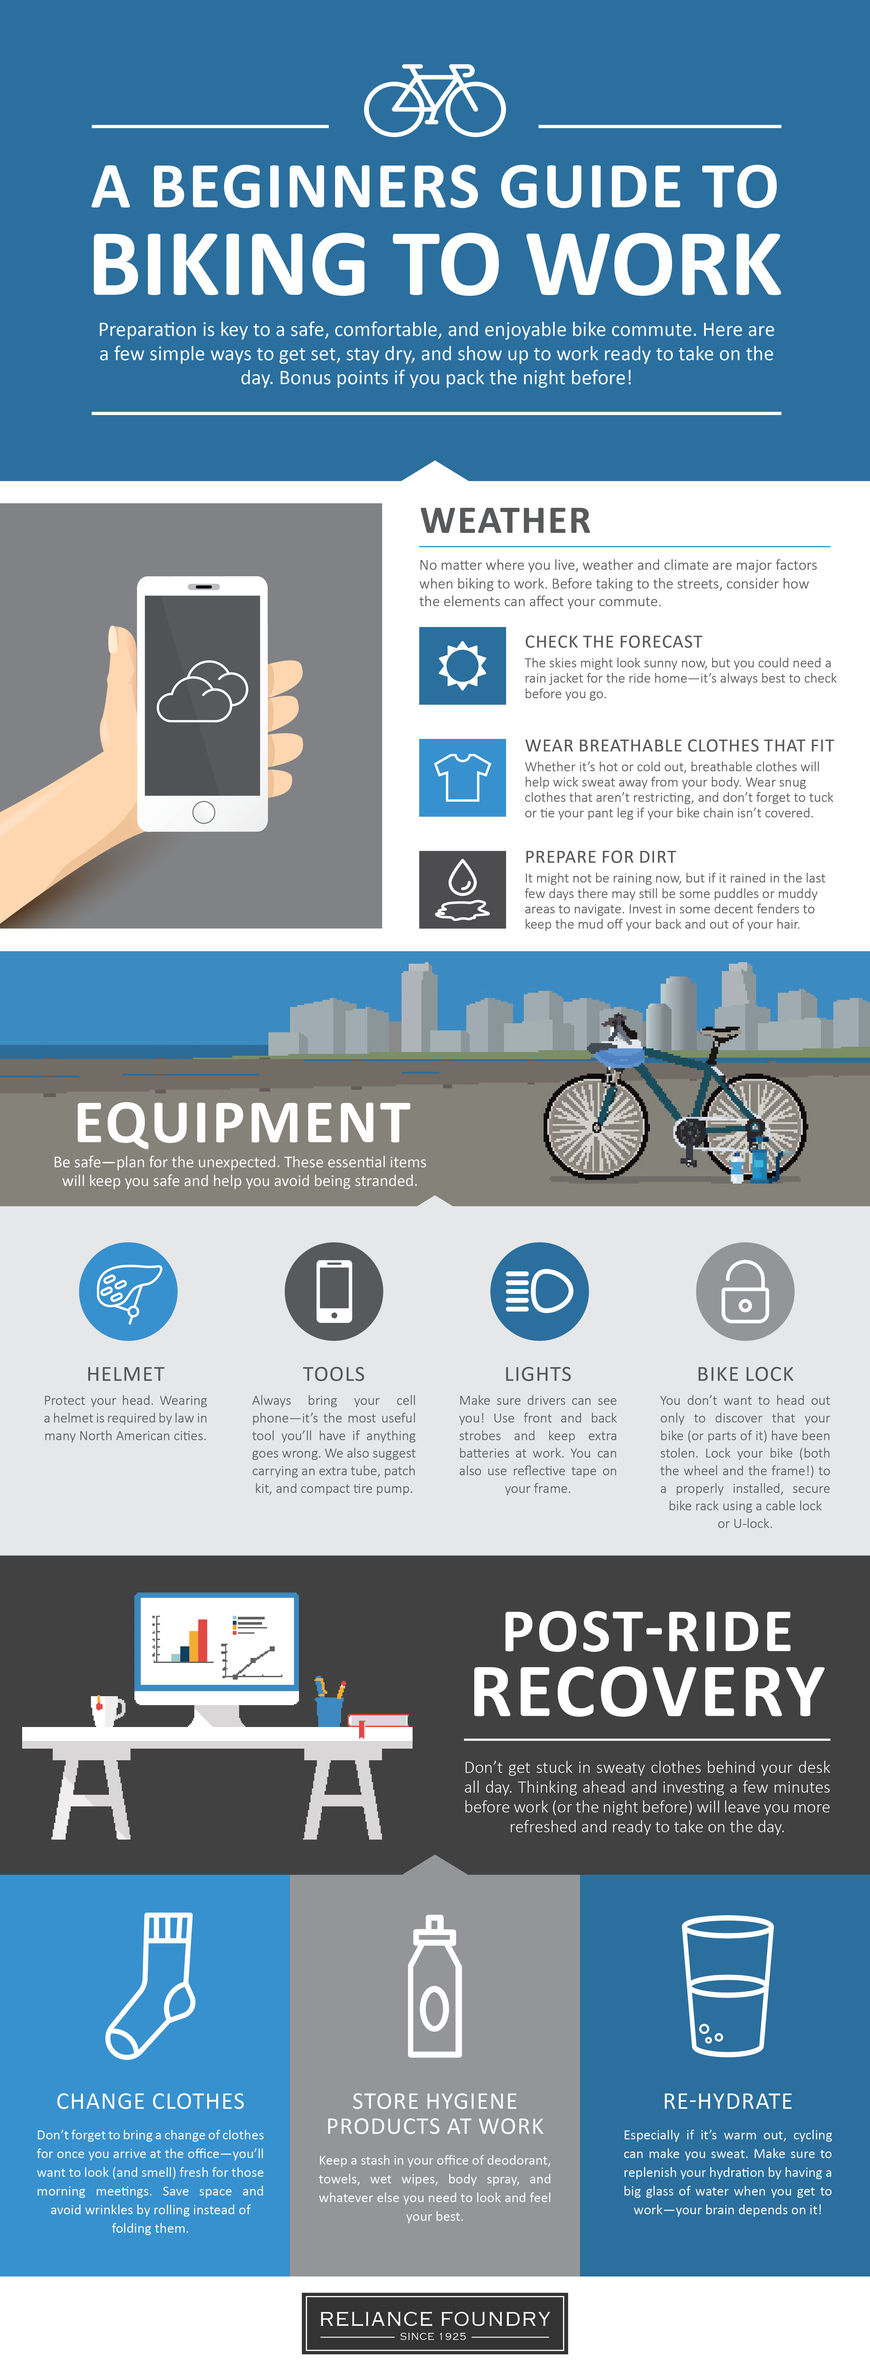 Infographic with 10 tips for bicycle commuting for beginners